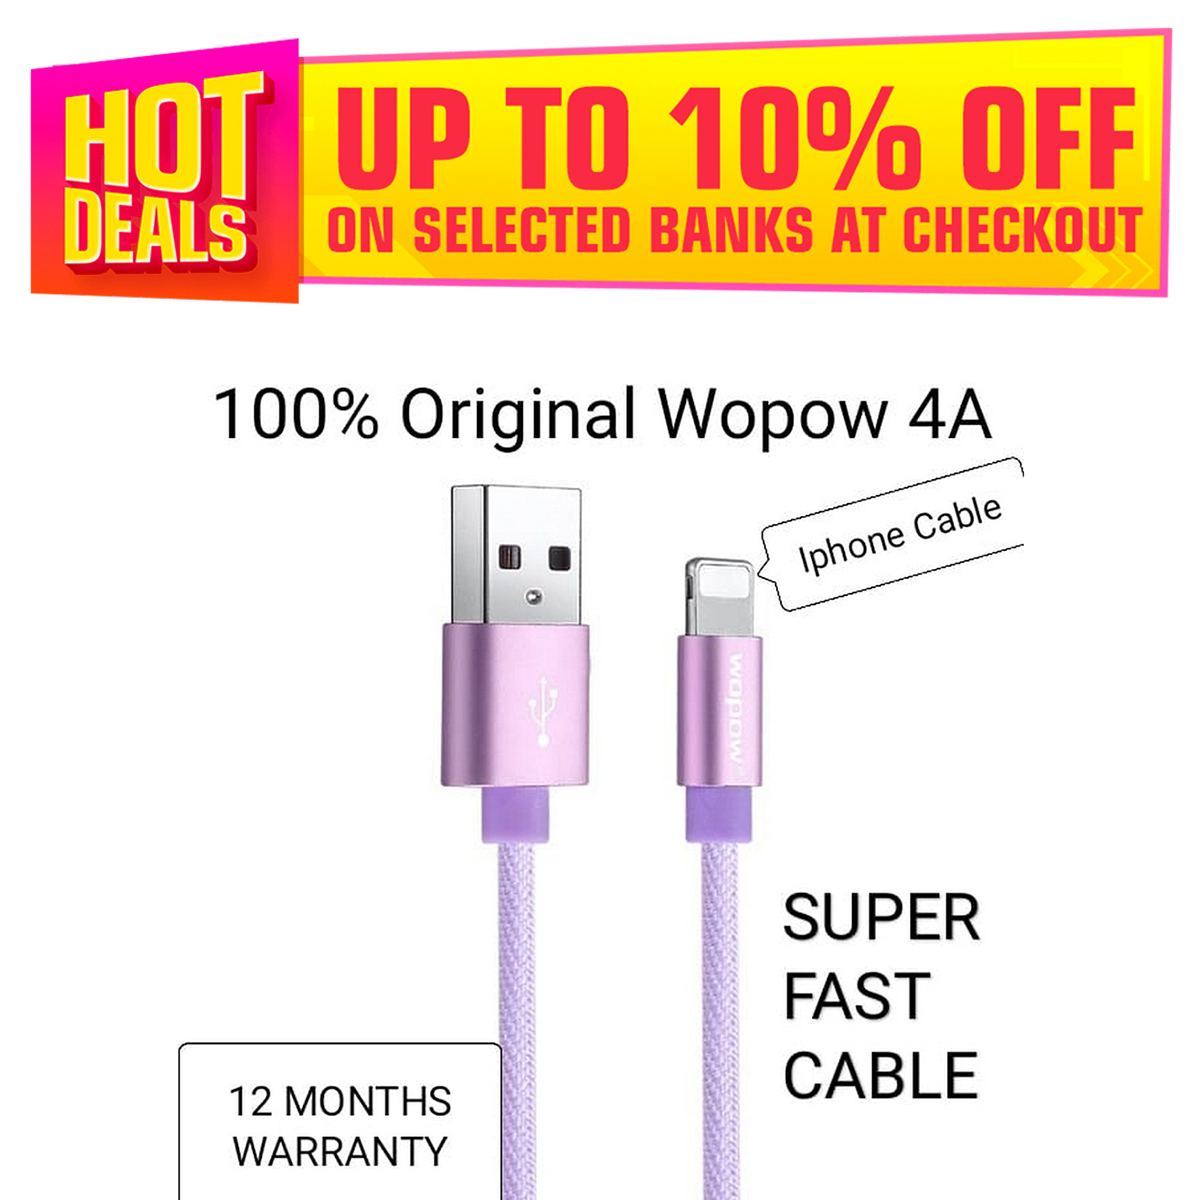 101% Original WOPOW 4A Pure Copper woven Fabric Wire Fast Iphone Charging + Data Cable For All Iphone Devices